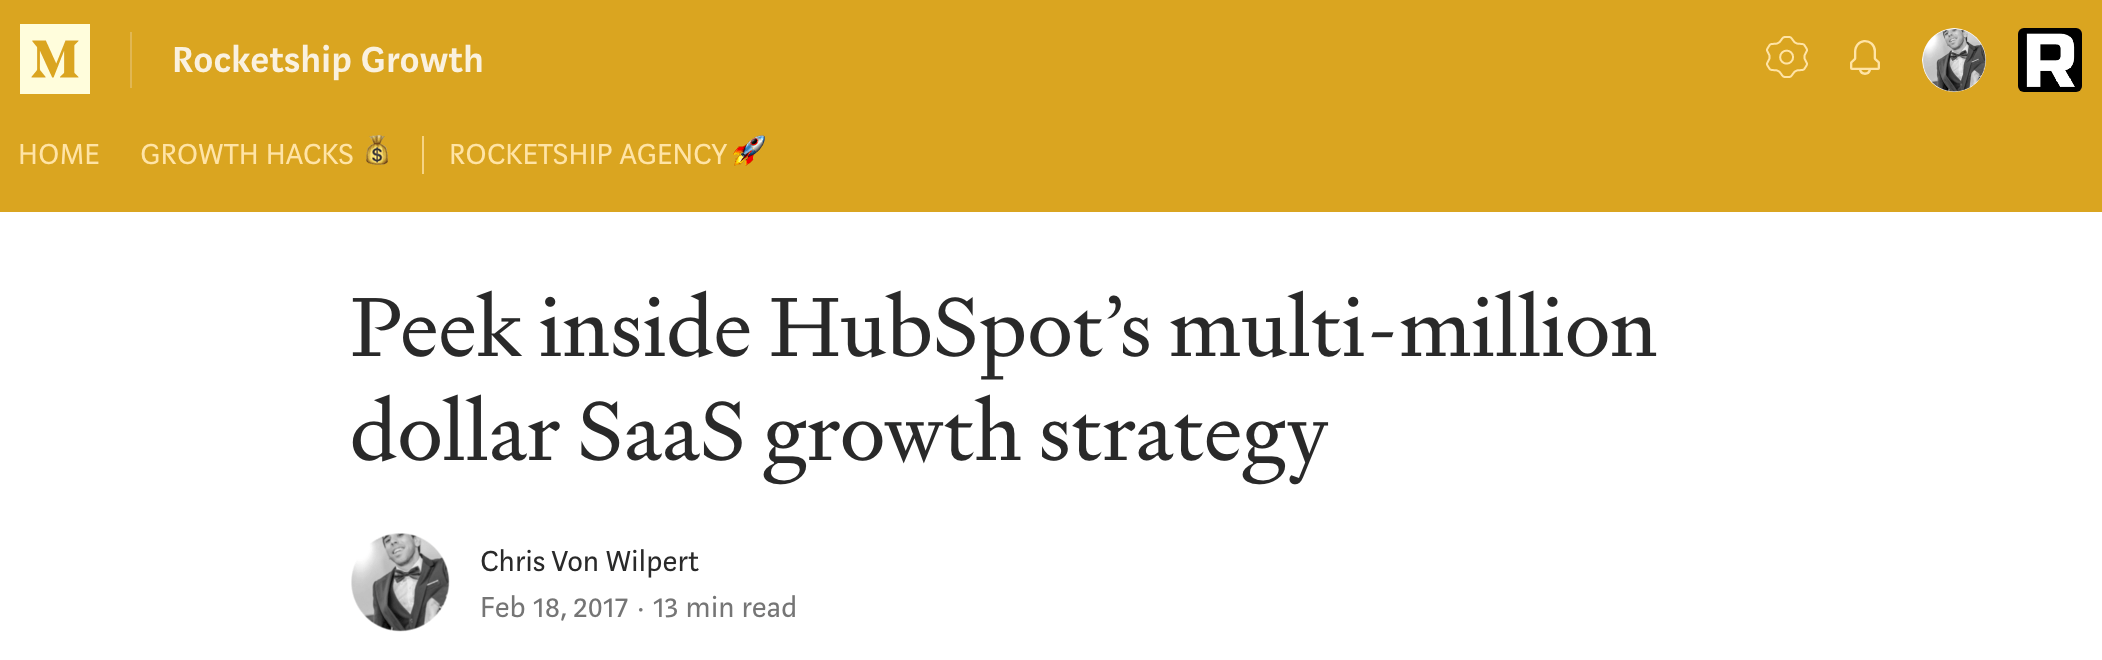 medium story hubspot image